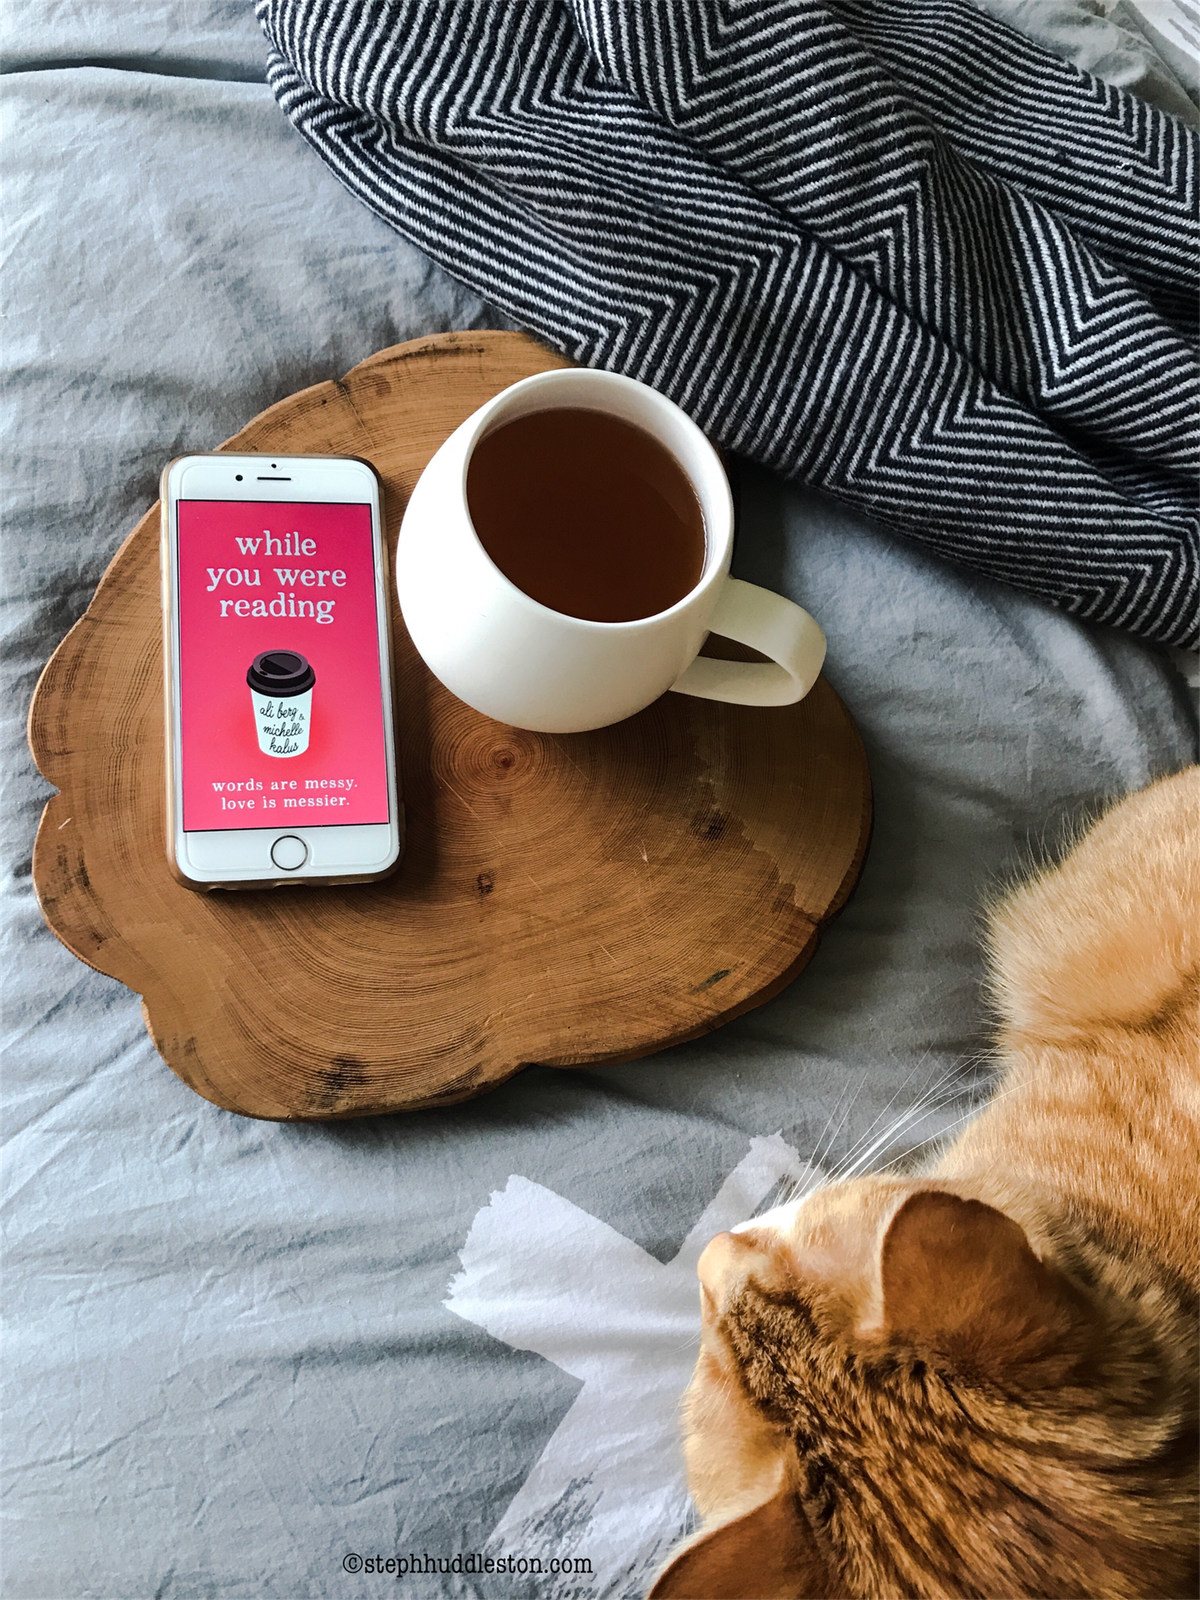 Ginger cat cuddles up next to 'While you were reading' book and cup of tea